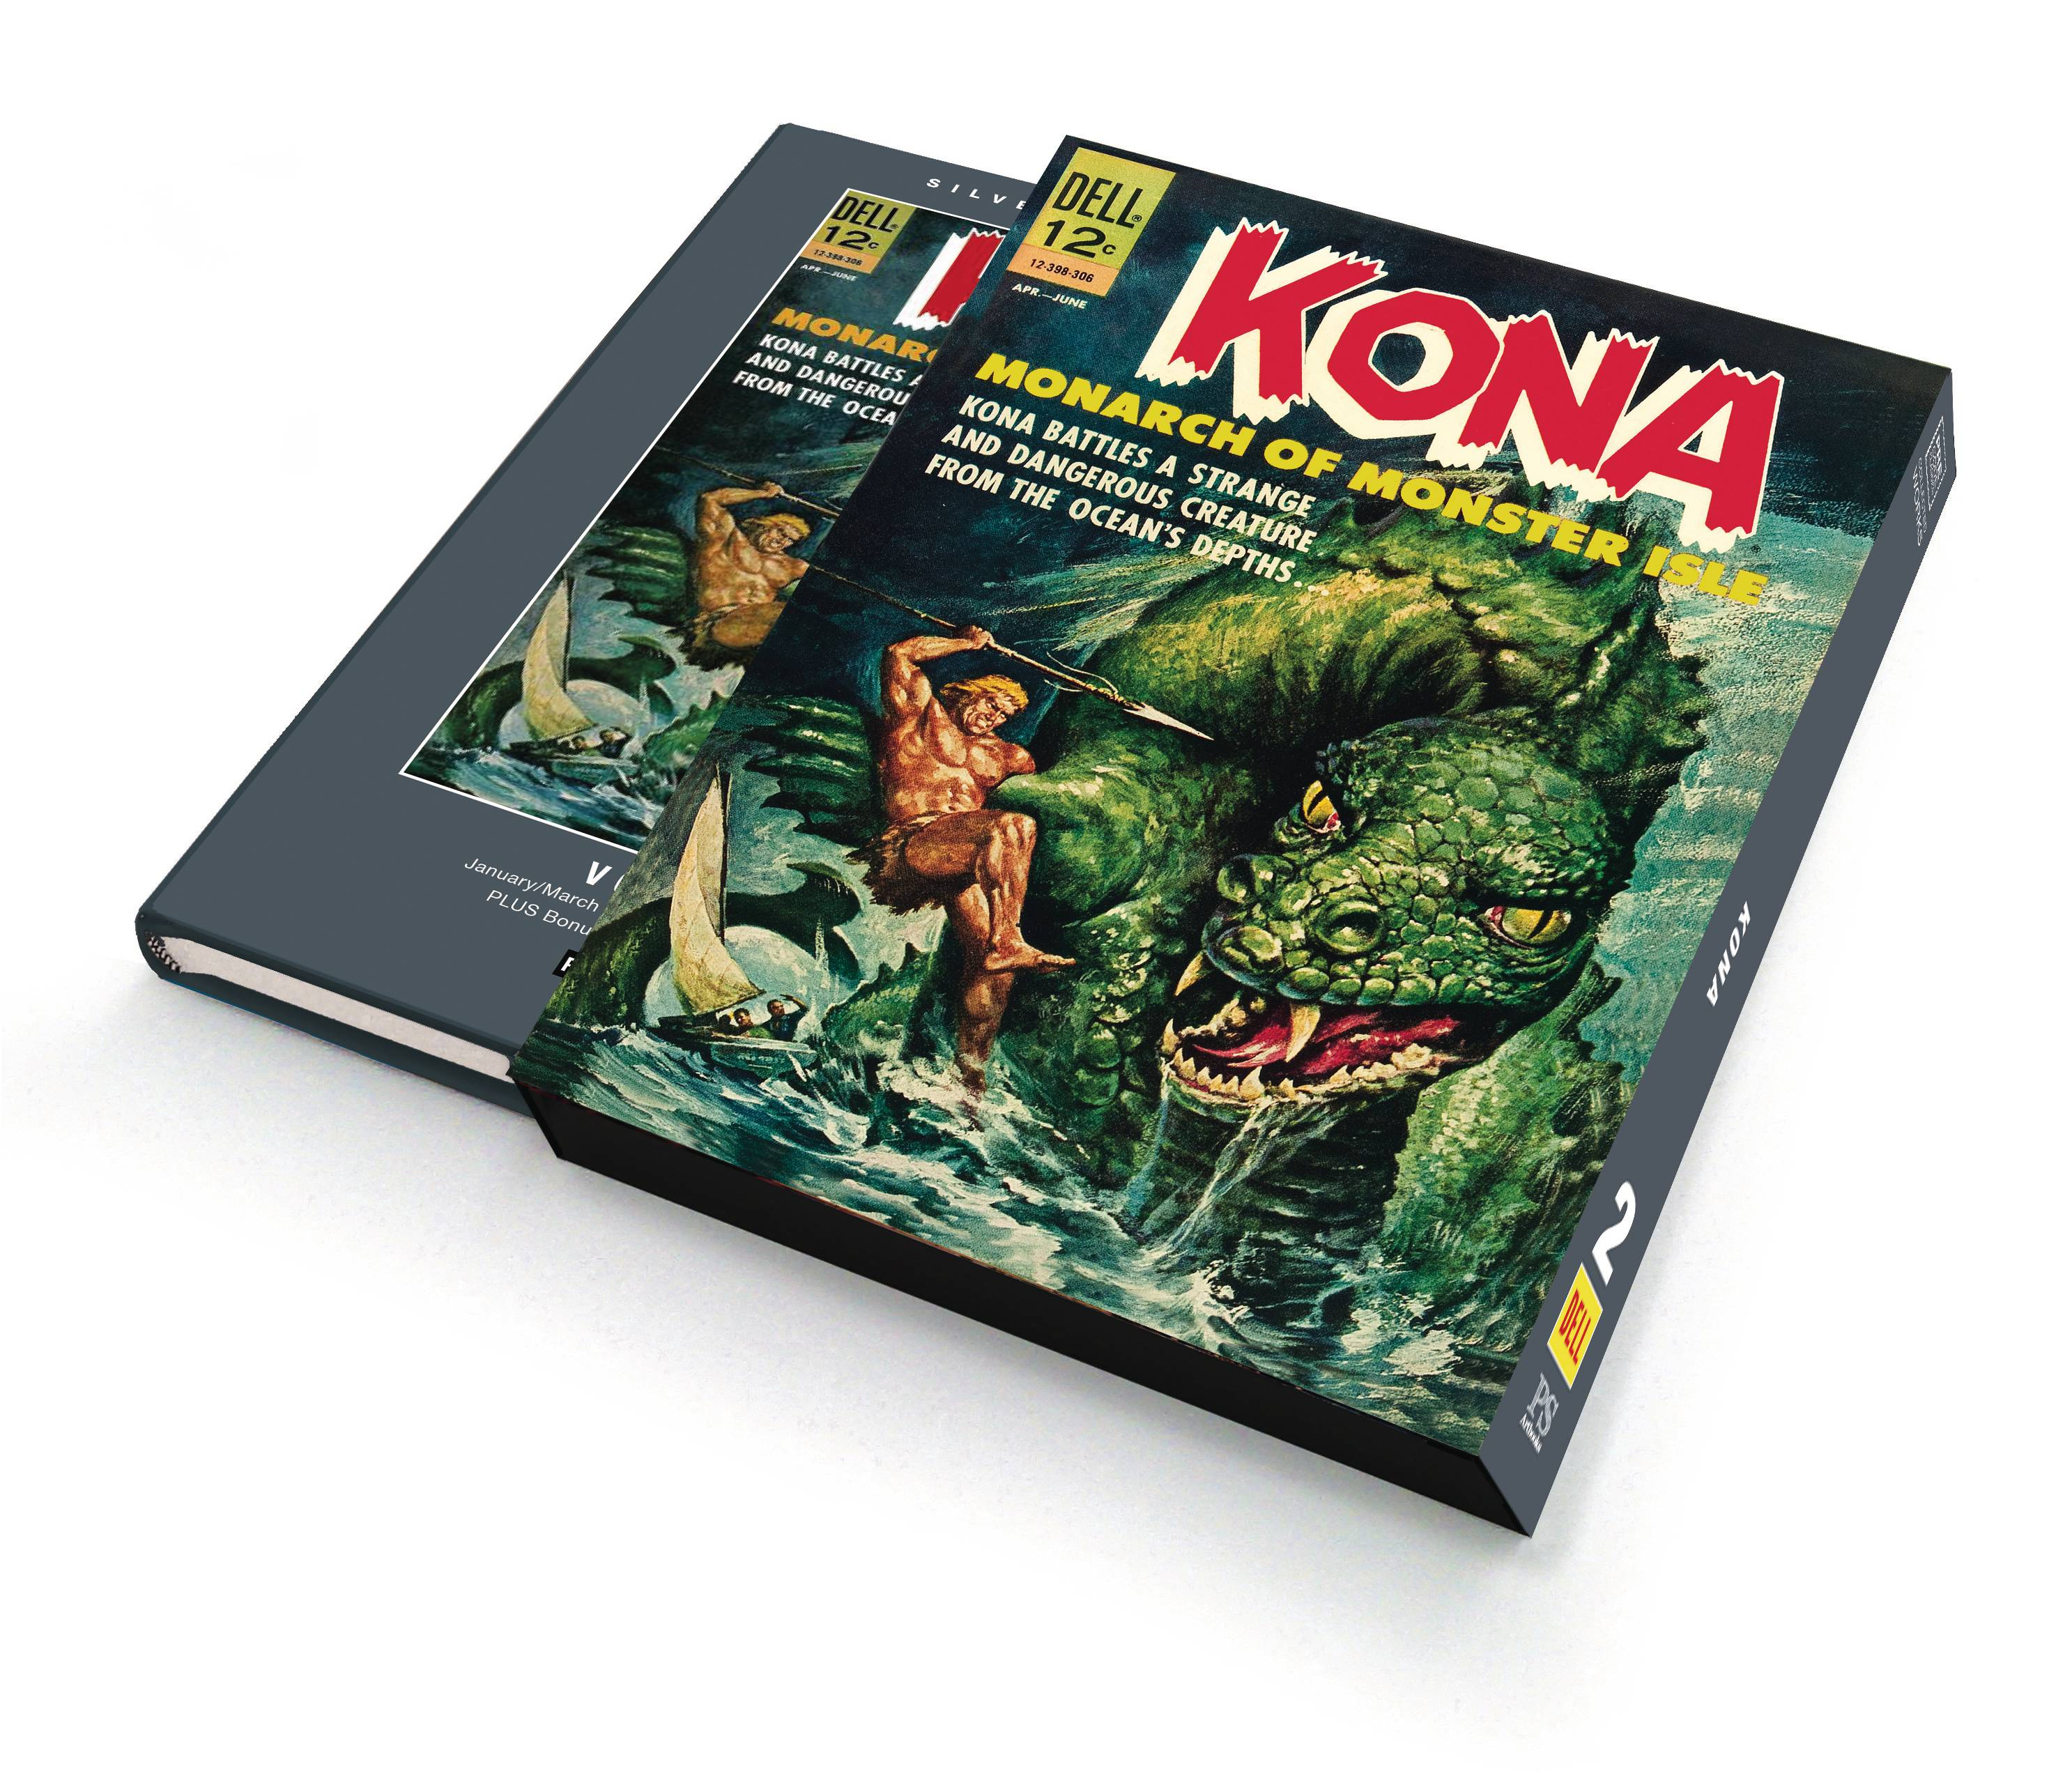 SILVER AGE CLASSICS KONA MONARCH MONSTER ISLE HC 02 SLIPCASE